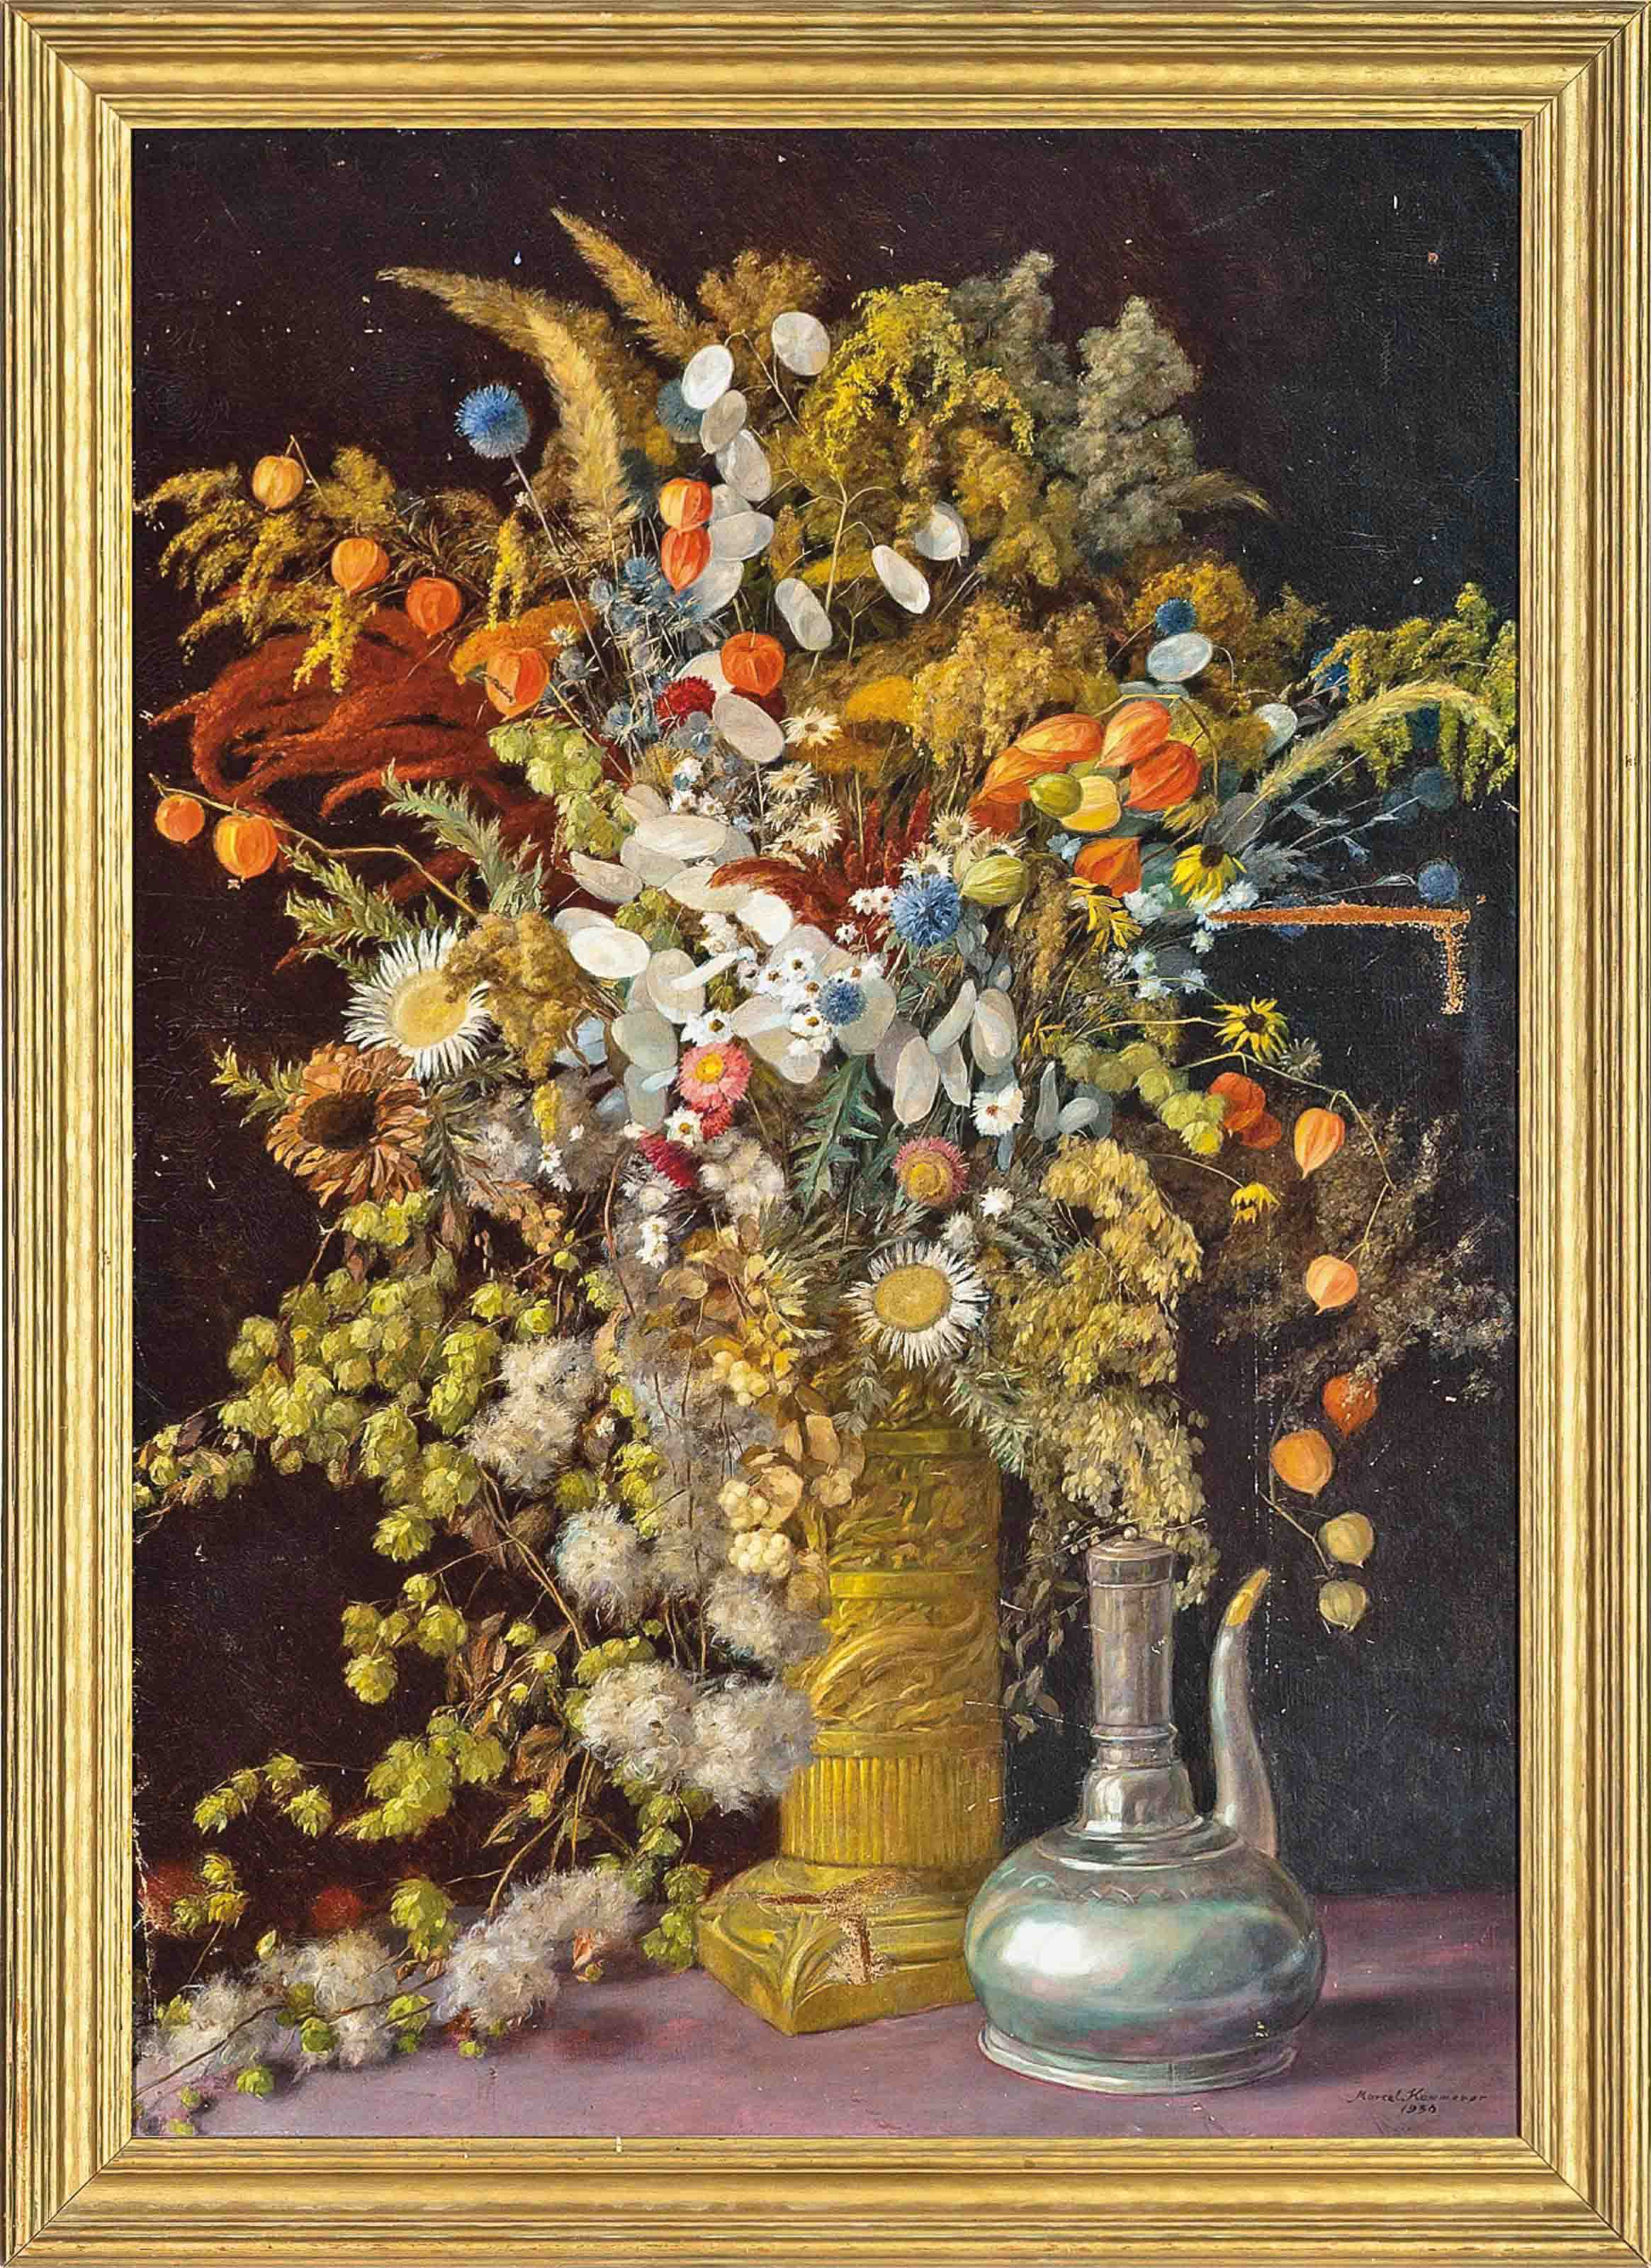 Dried summer flowers and grasses in an ornamental stone vase by a coffee pot